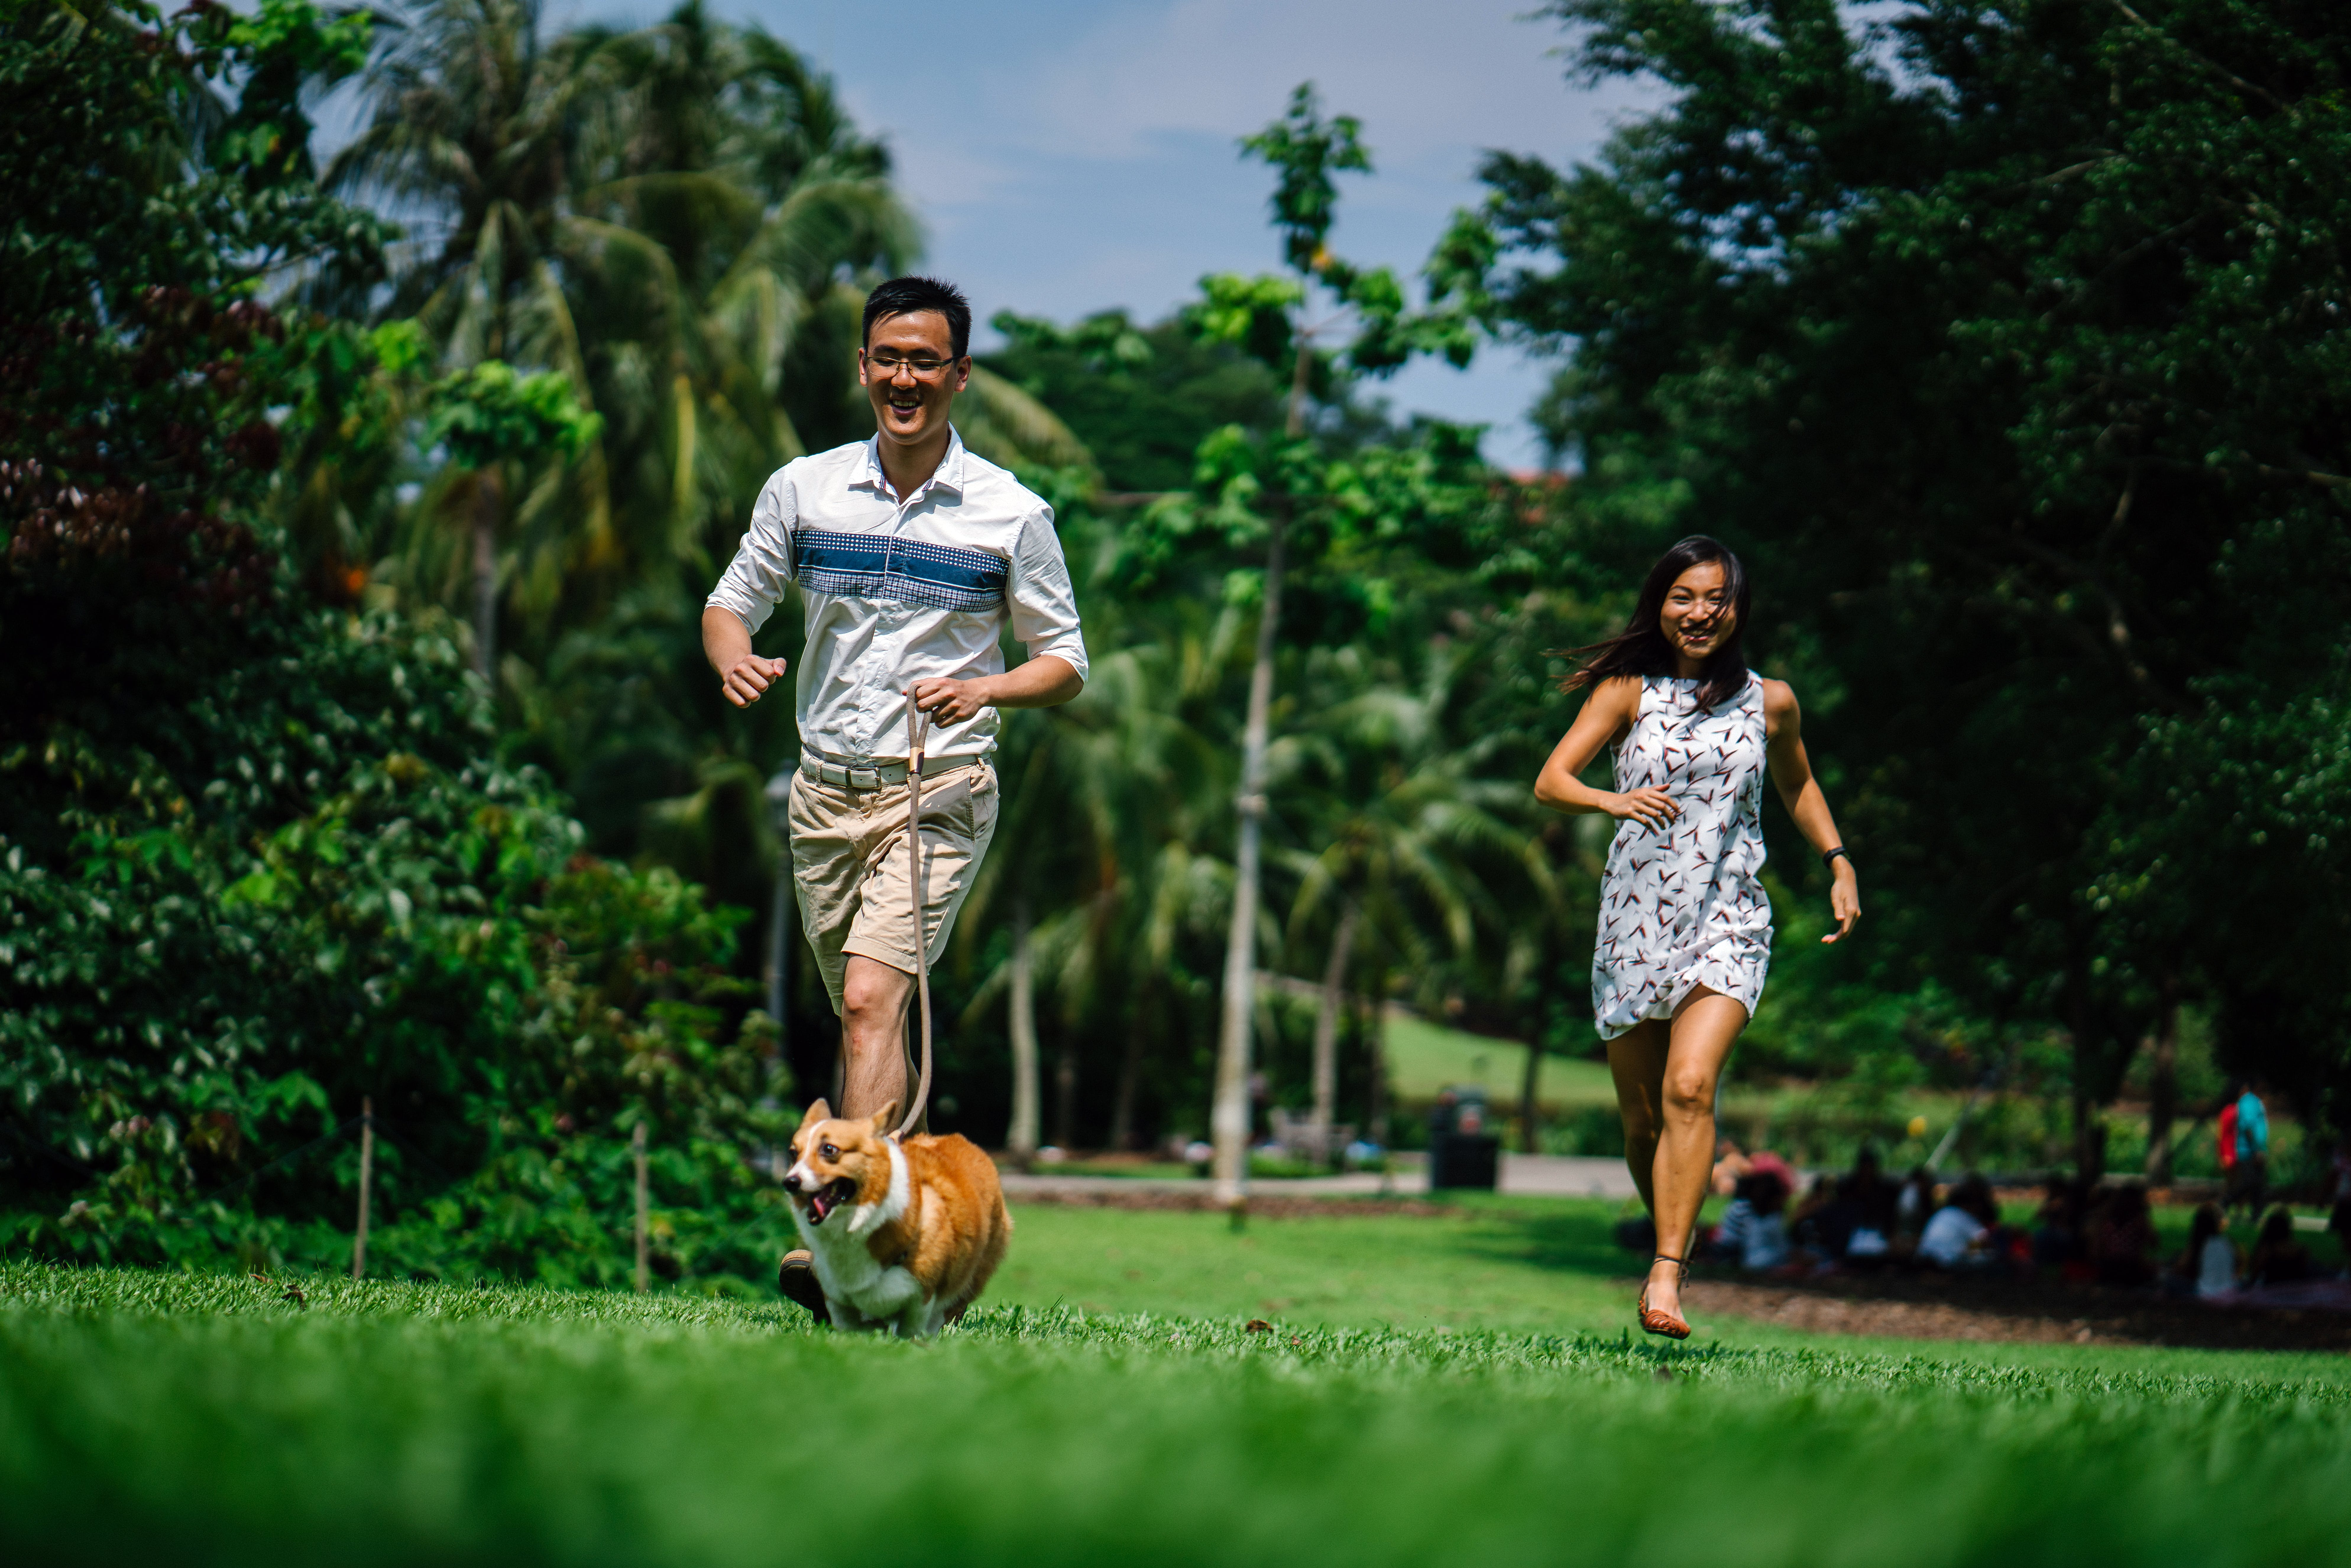 Man and Woman Running Near Green Leaf Trees Photo